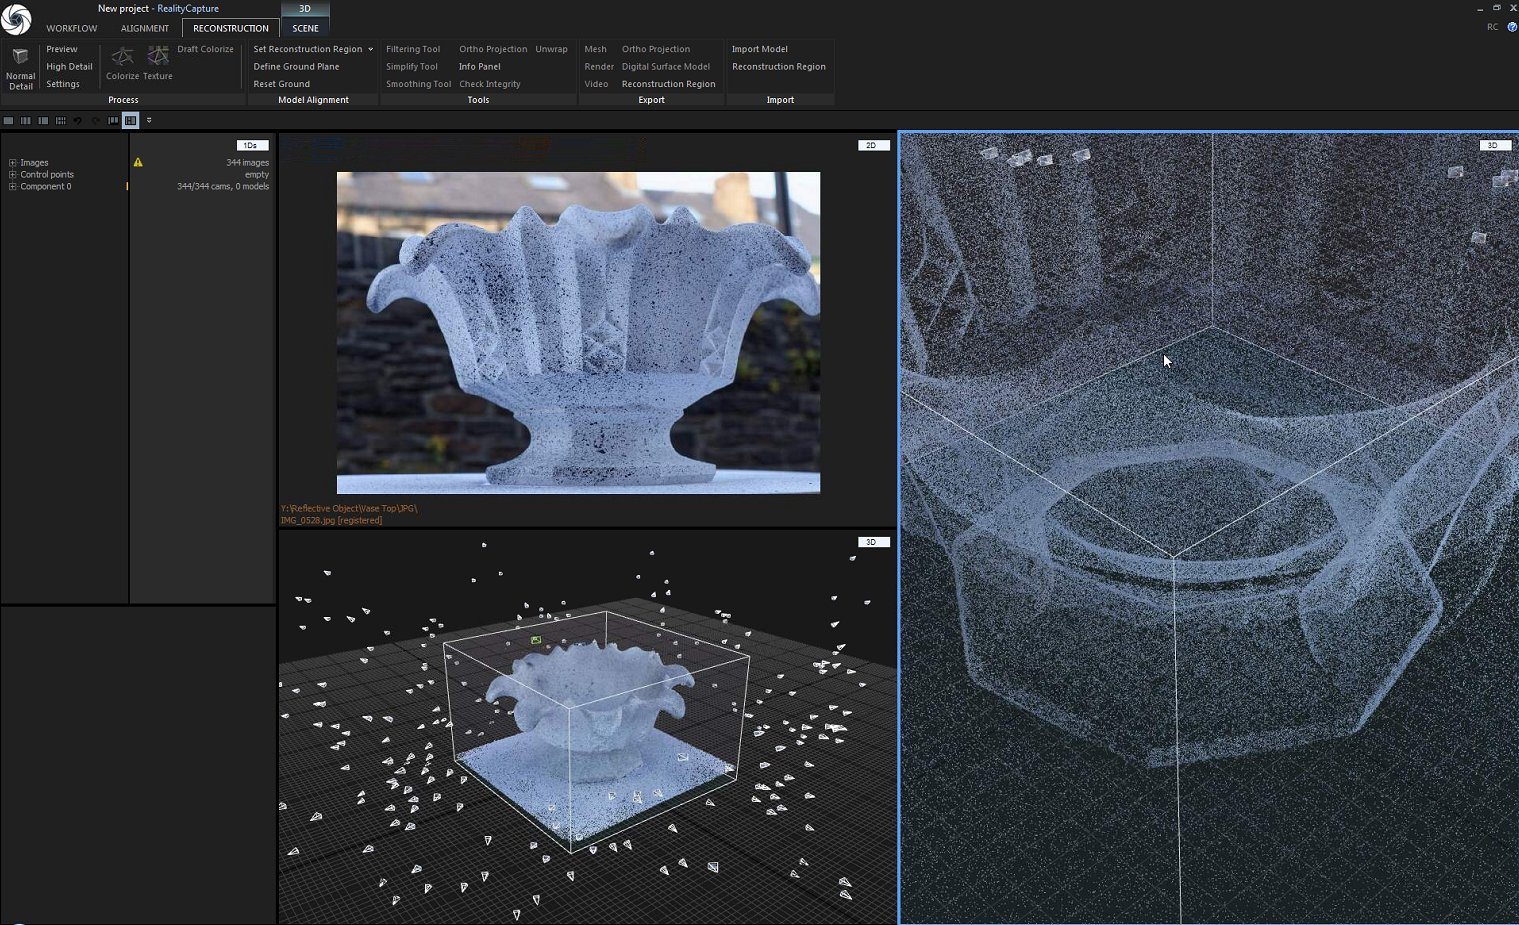 3D Scanning Reflective Objects With Photogrammetry